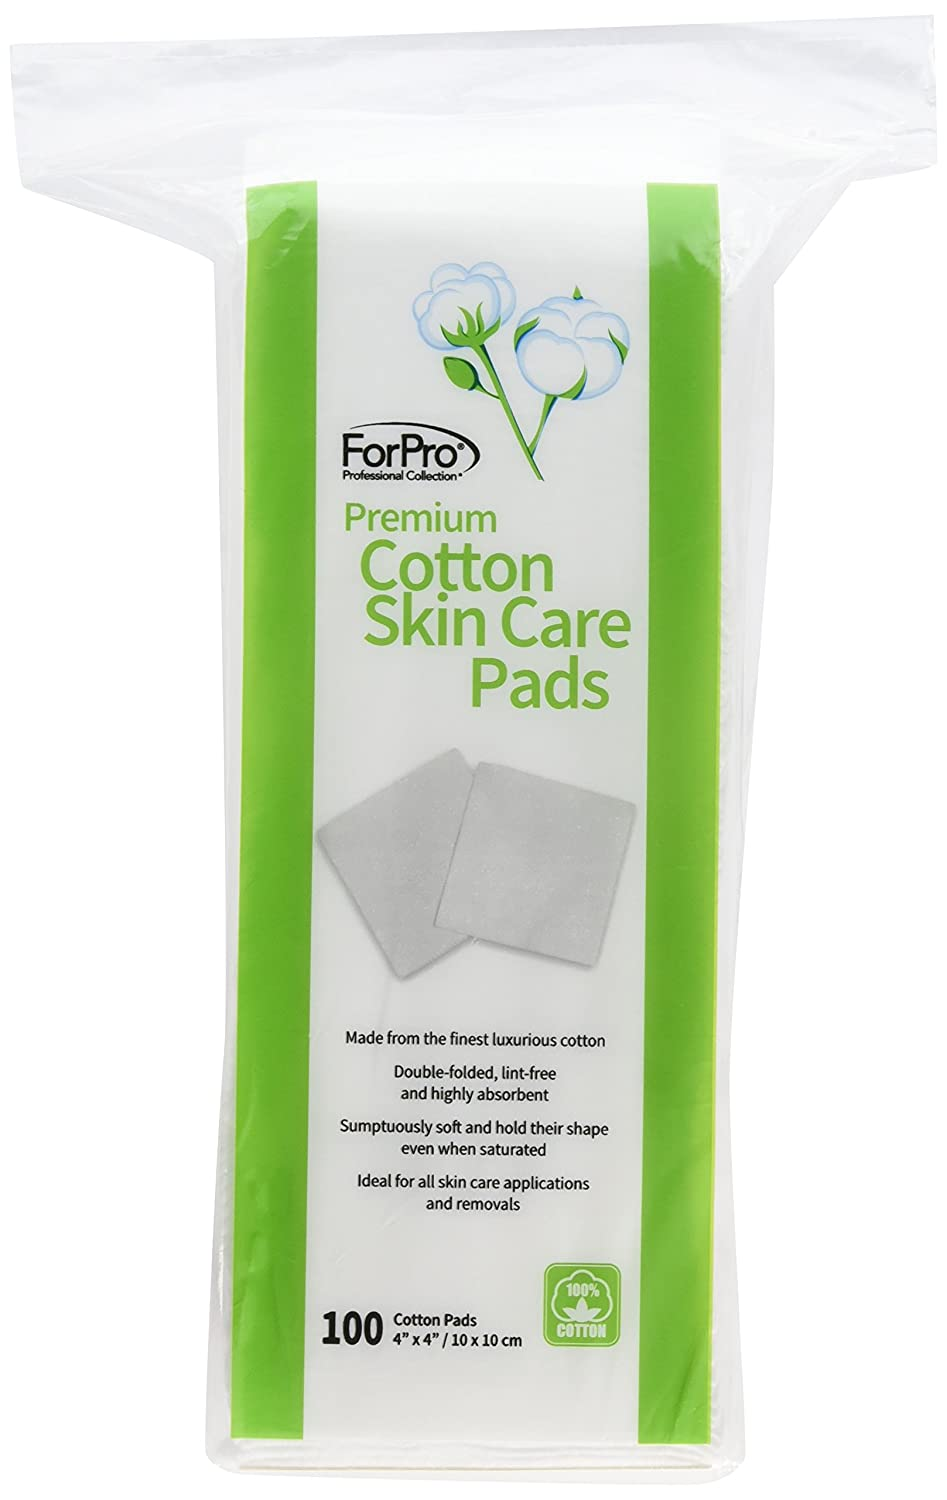 ForPro Premium 100% Cotton 4x4 Skin Care Pads, 100 Count TNG Worldwide